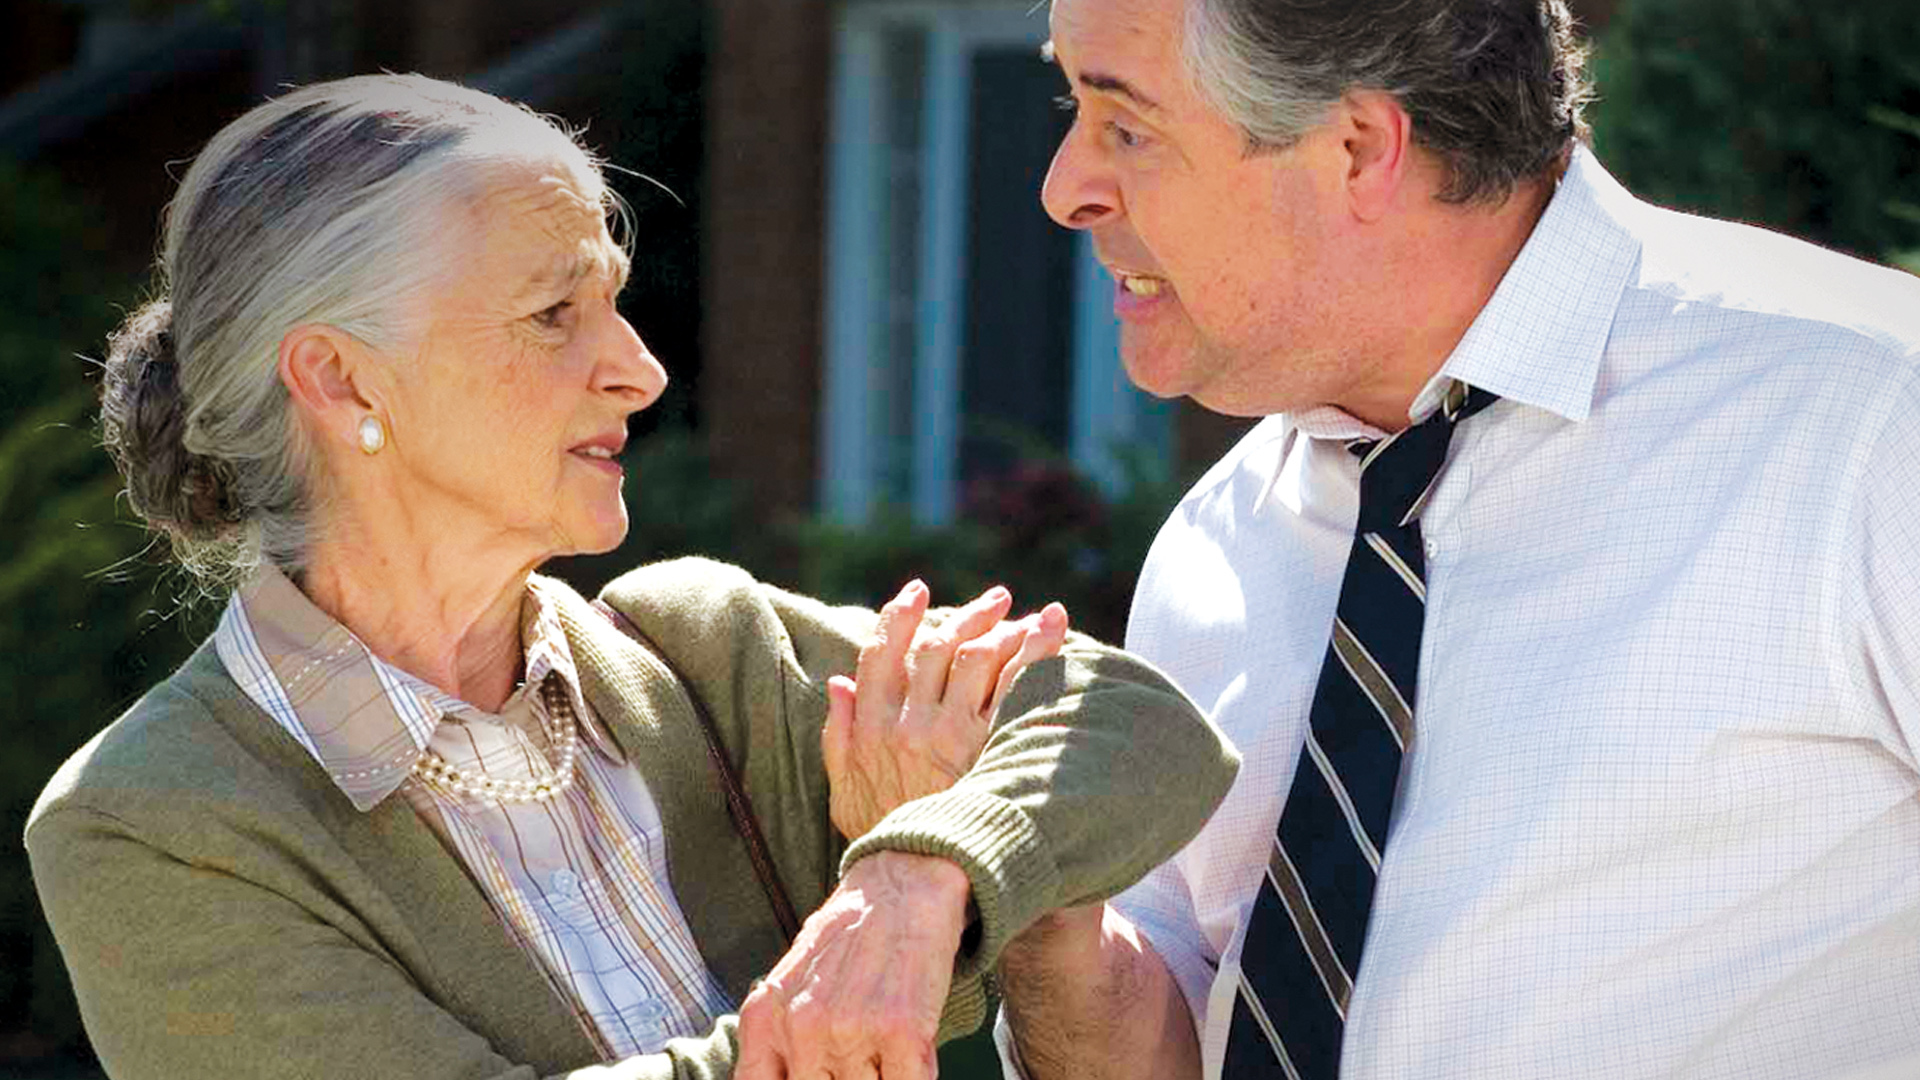 Learn The Signs Of Elder Abuse